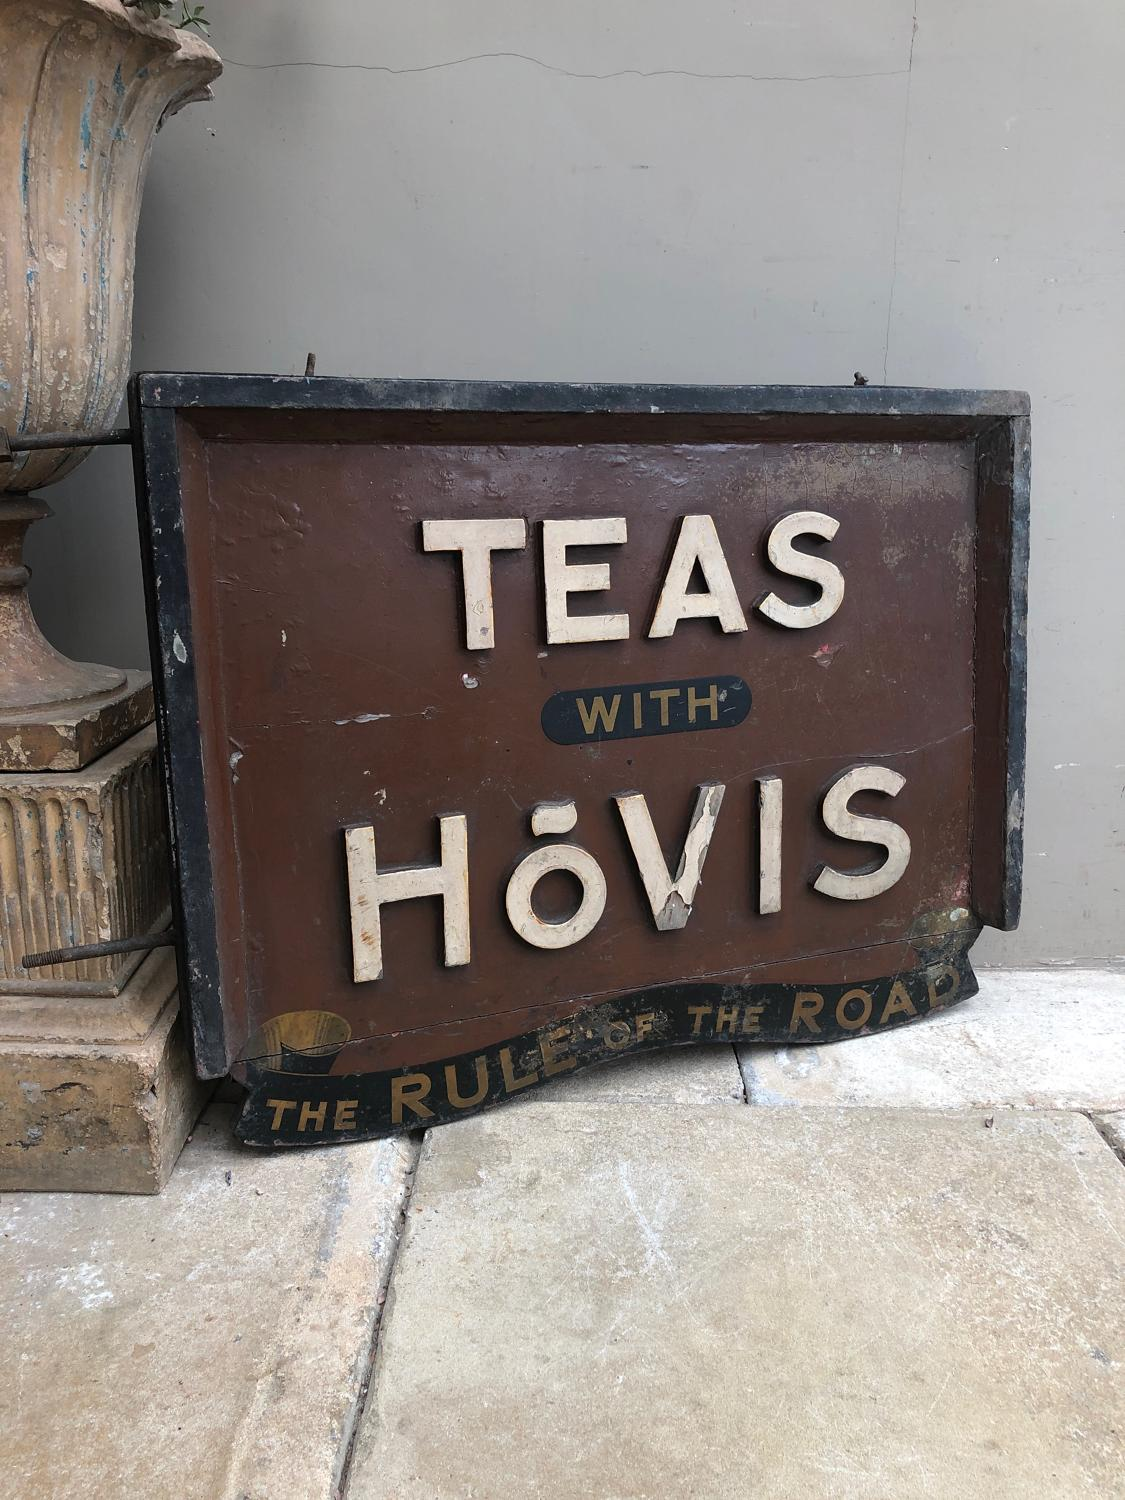 1920s Pine Advertising Sign - Teas With Hovis The Rule Of The Road